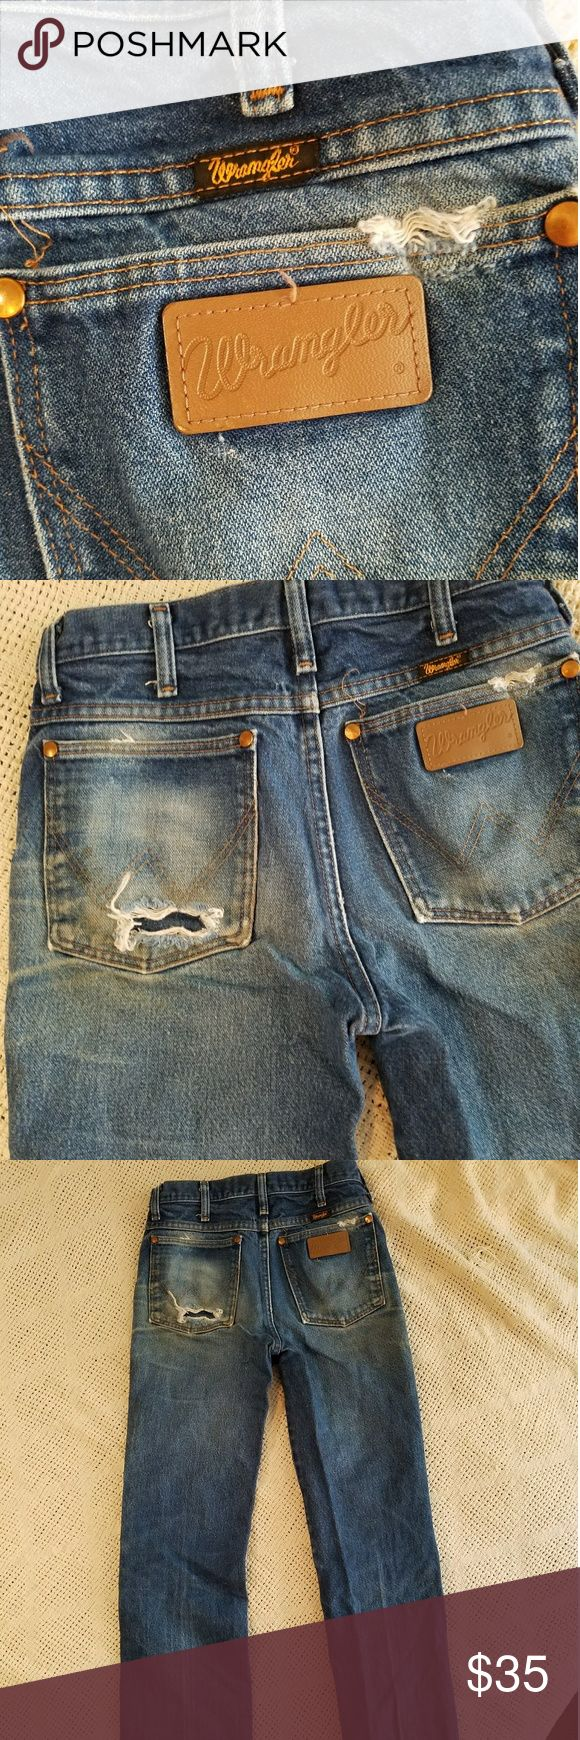 Vintage high waist Wrangler jeans 100% vintage Wrangler denim jeans high waist. needs a few reinforcement stitches in the crotch Wrangler Jeans Boot Cut